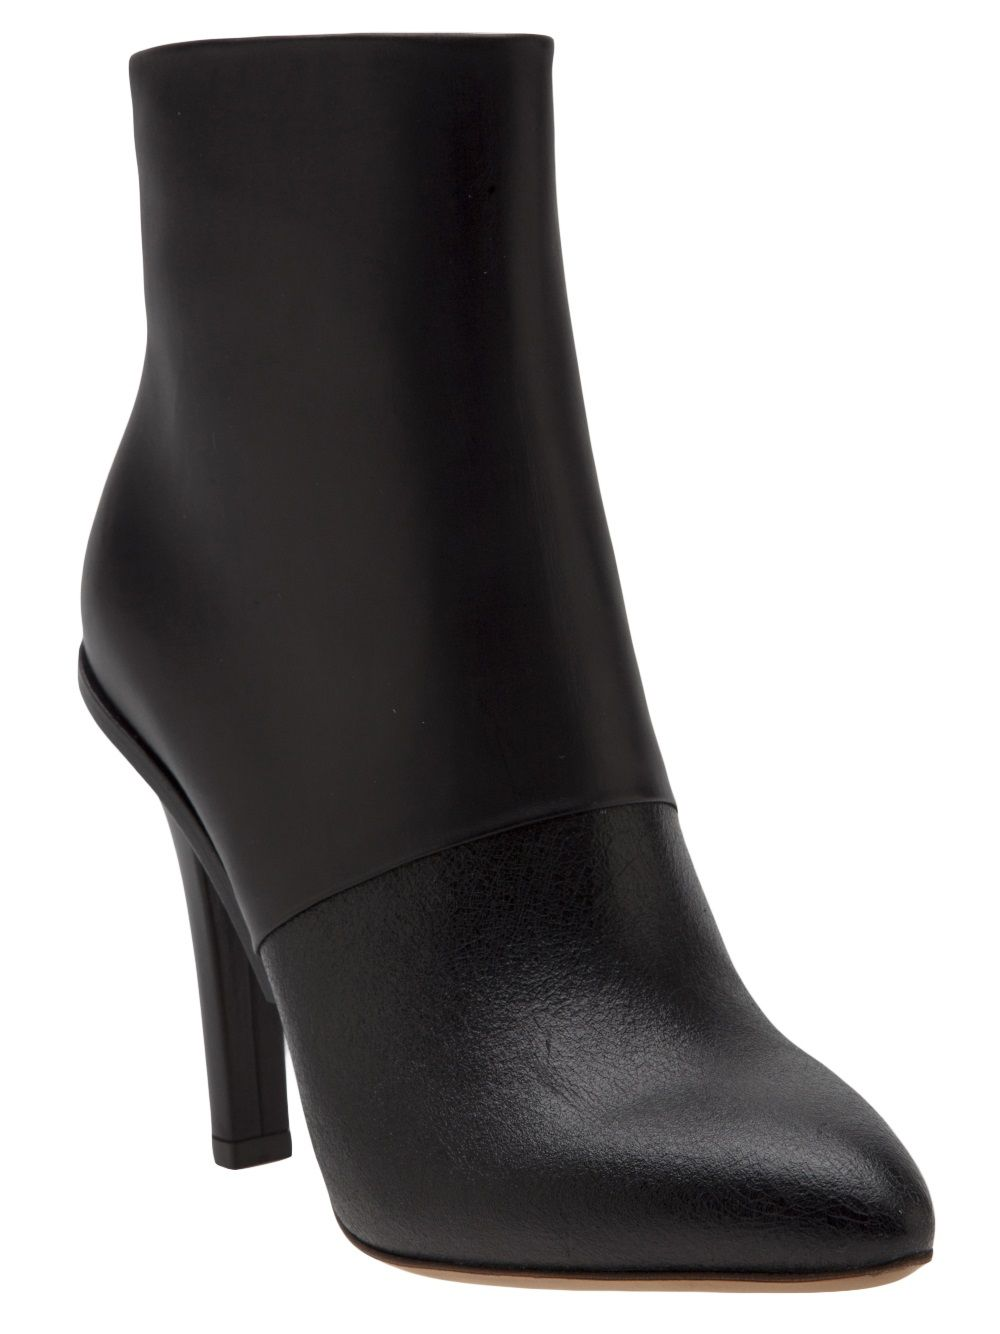 Casadei Black Lace Up Ankle Boot Black Suede 7.5